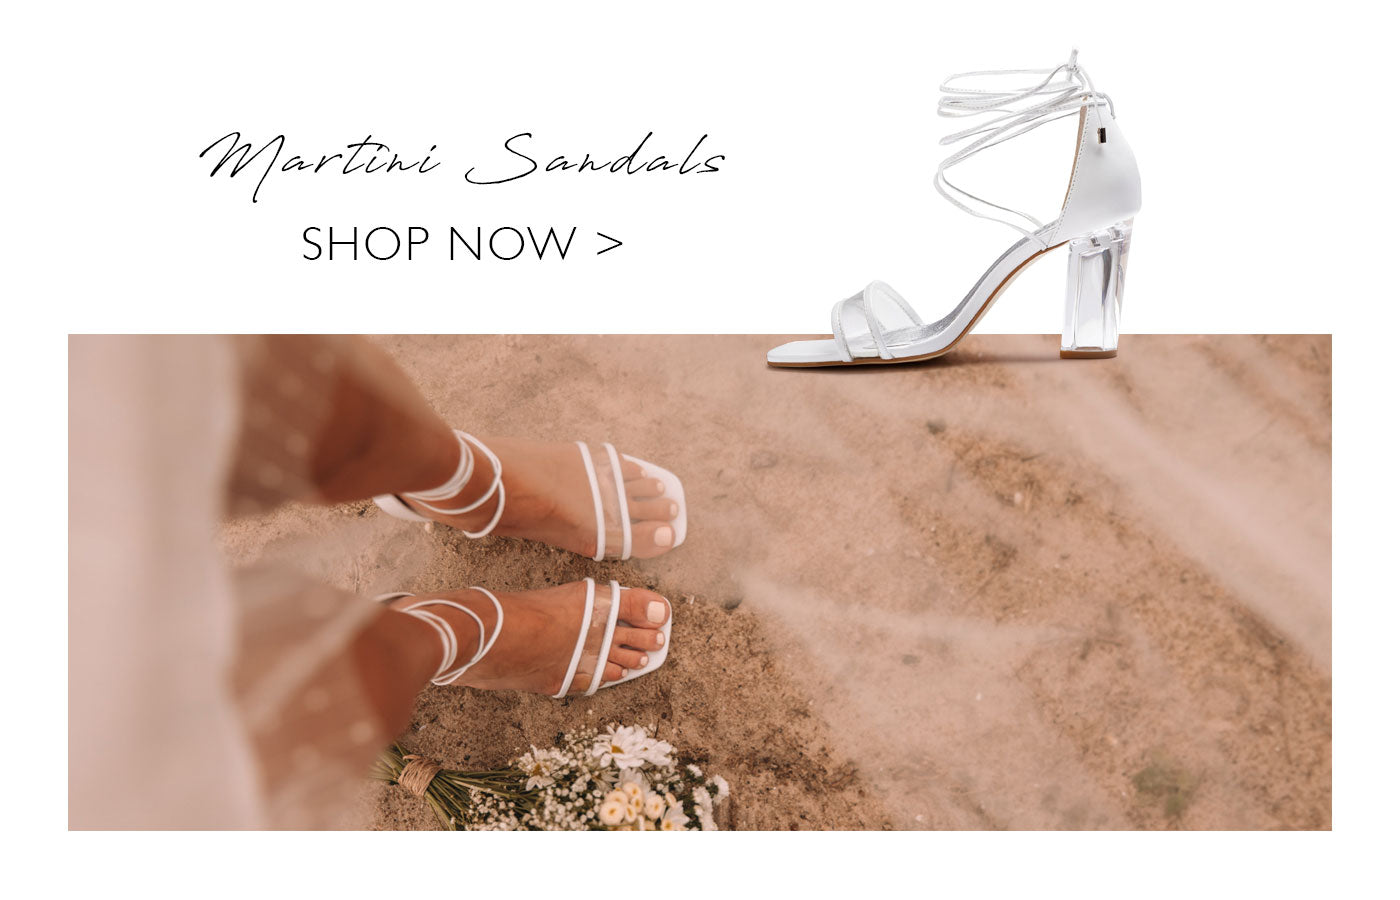 Forever Soles - Escape Collection - Martini Sandals